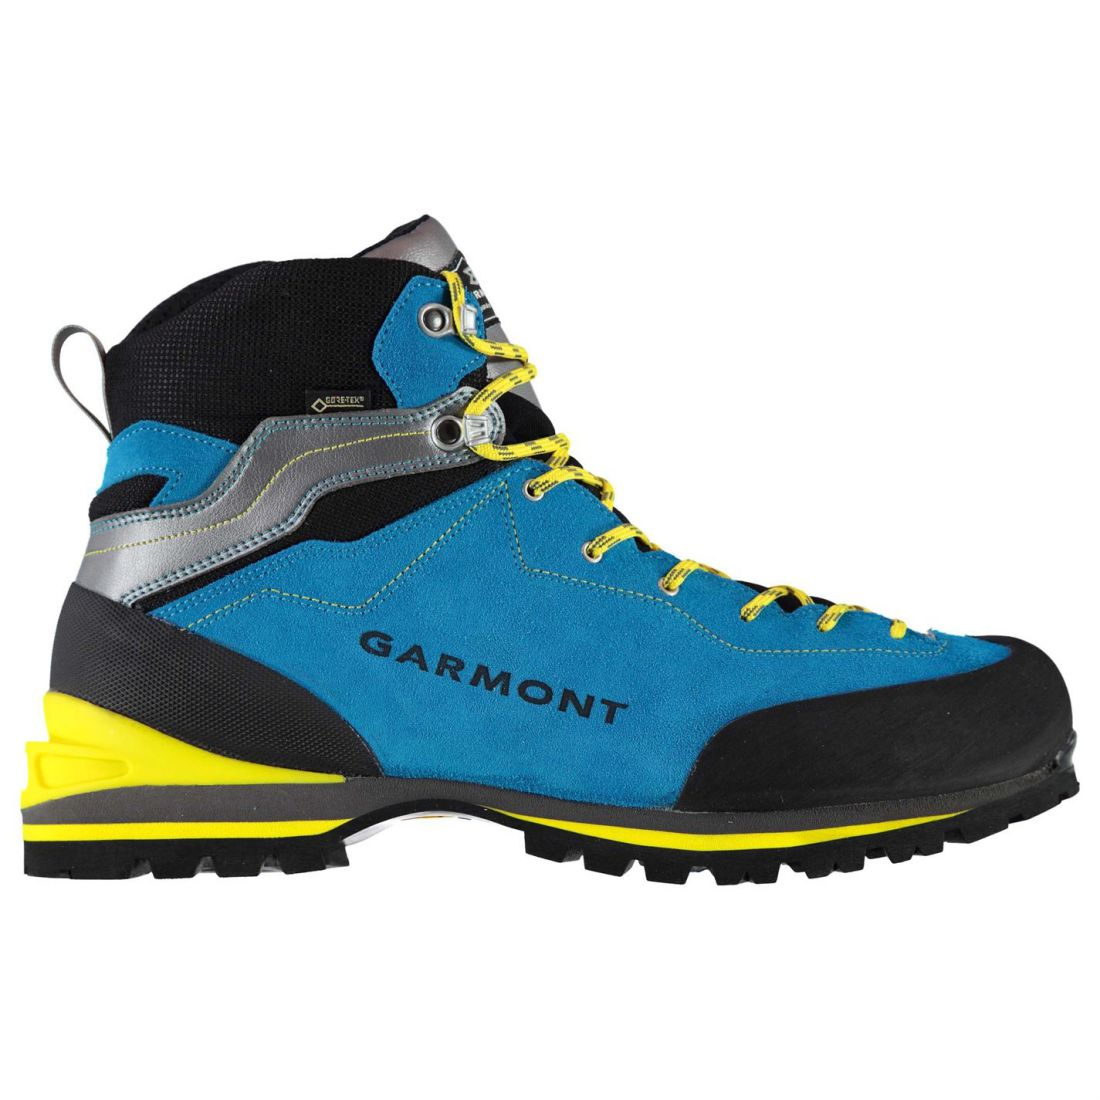 Garmont Mens Ascent GTX Shoes Outdoor Walking Trekking Hiking ... d20e45f659e